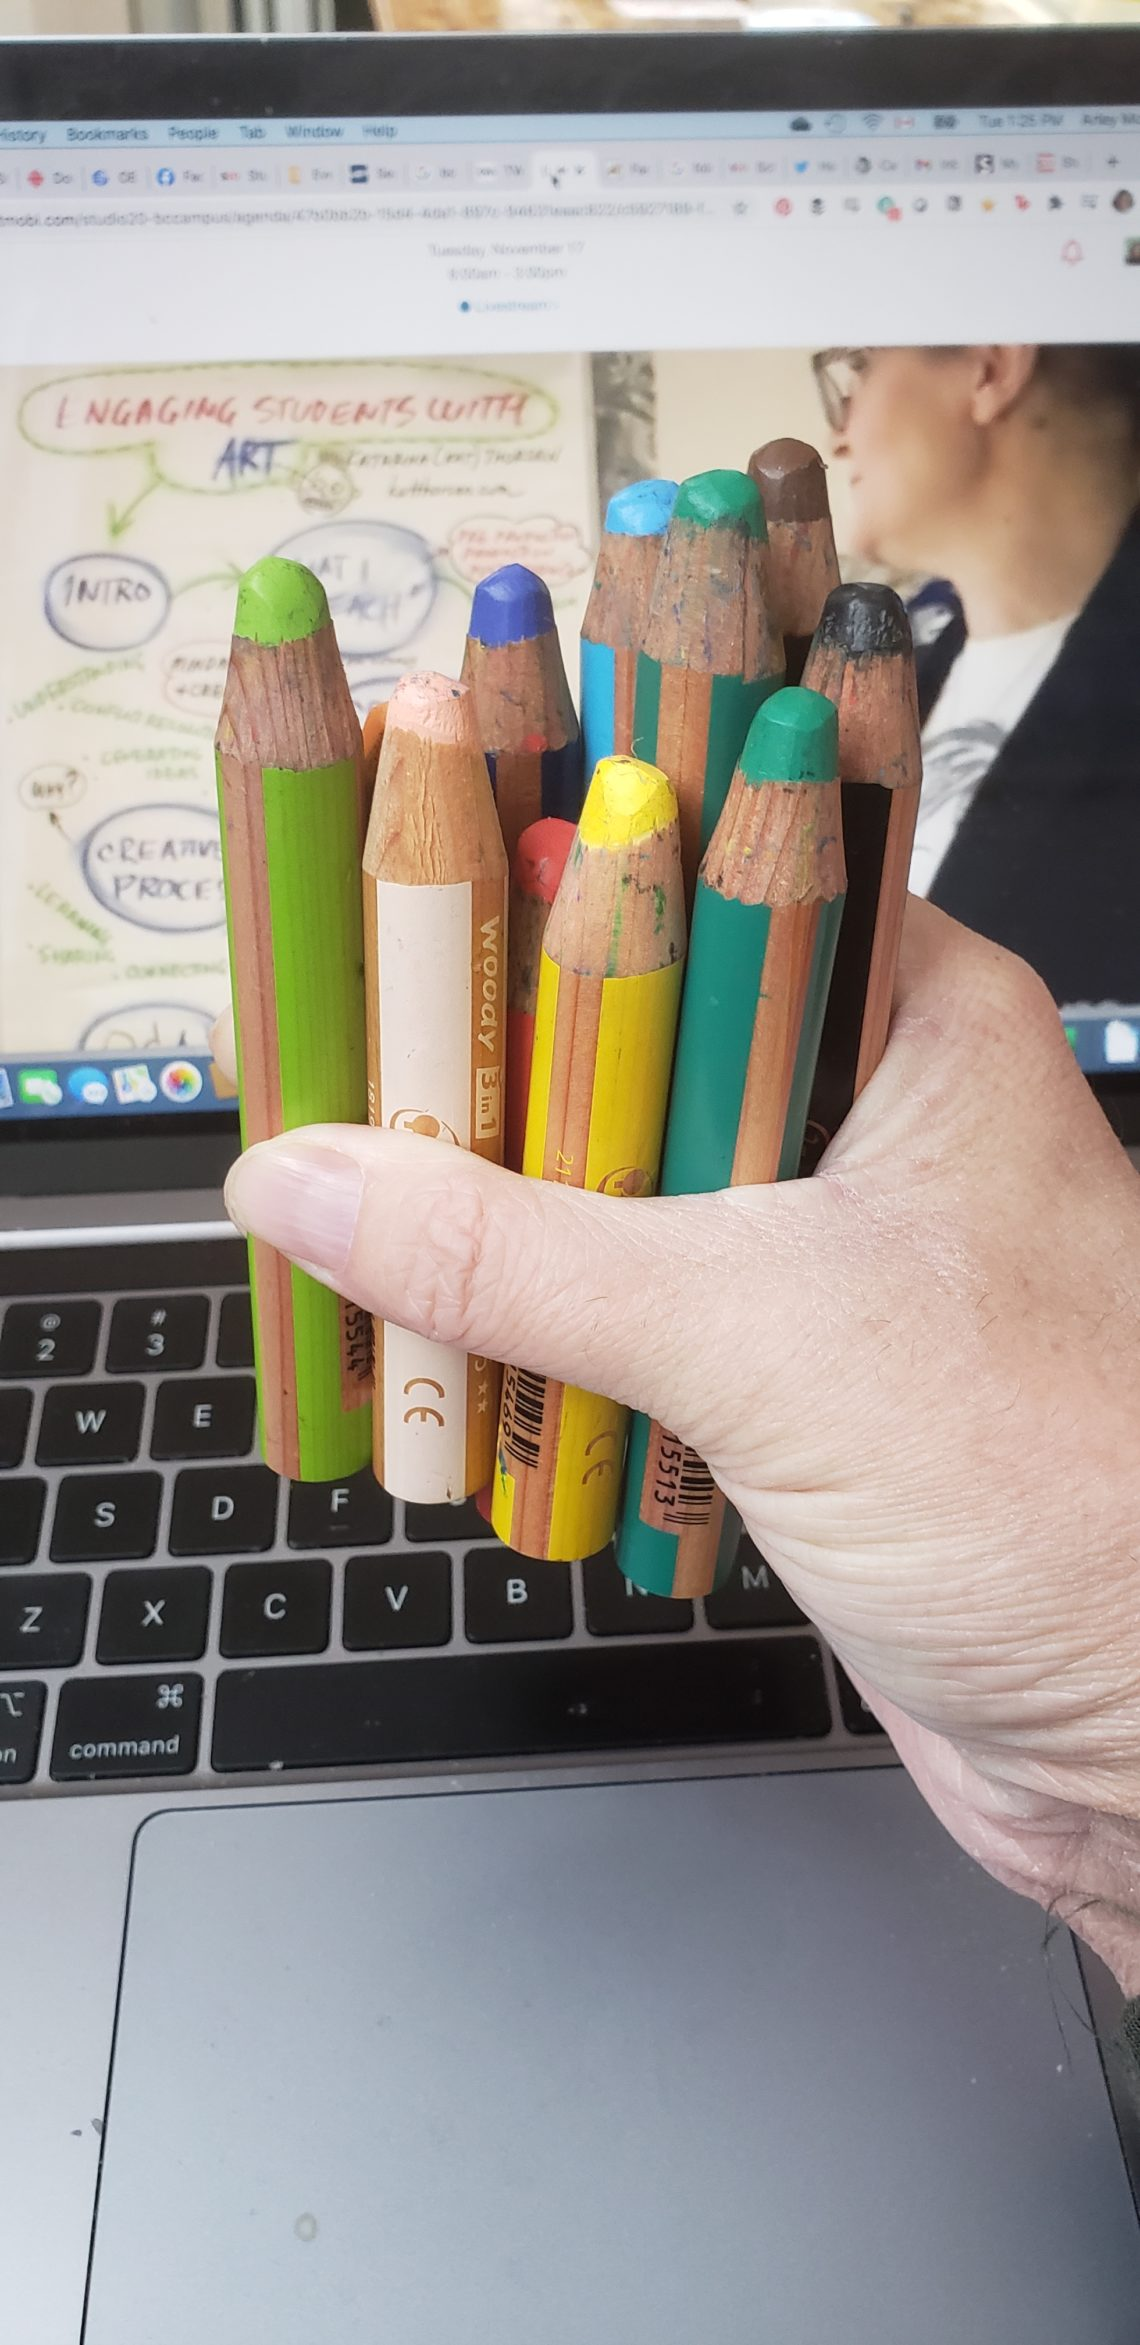 A handful of wooden pencils in Arley's hand in front of a screen